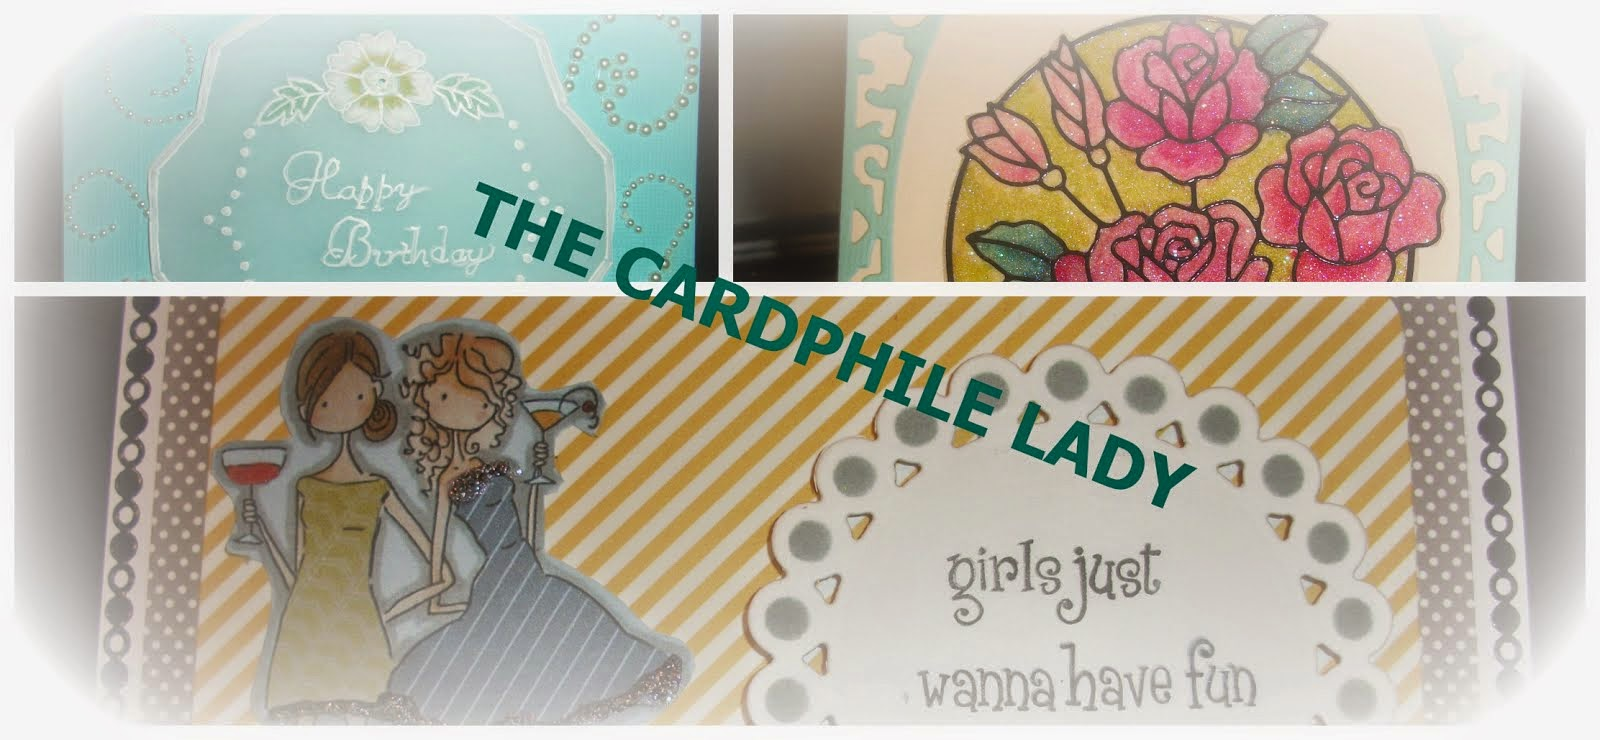 The Cardphile Lady